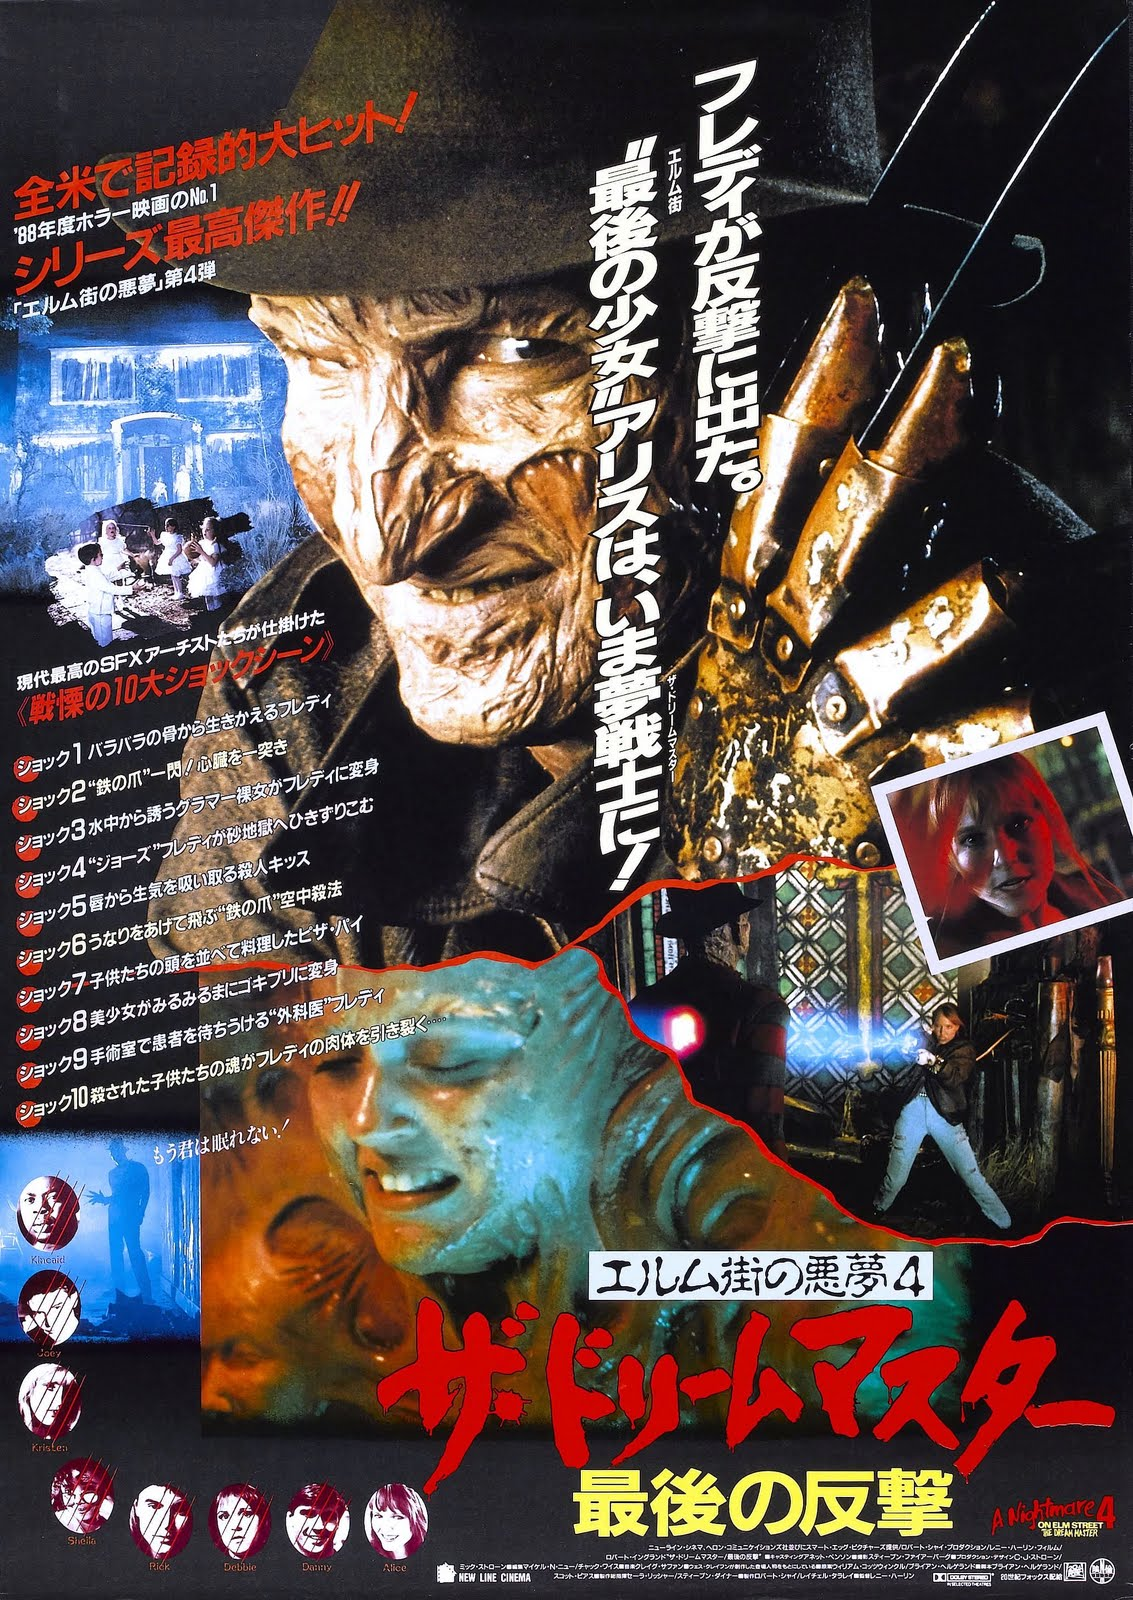 a review of the american horror film series nightmare on elm street by wes craven A nightmare on elm street is an american horror franchise that consists of nine slasher films, a television series, novels, and comic.